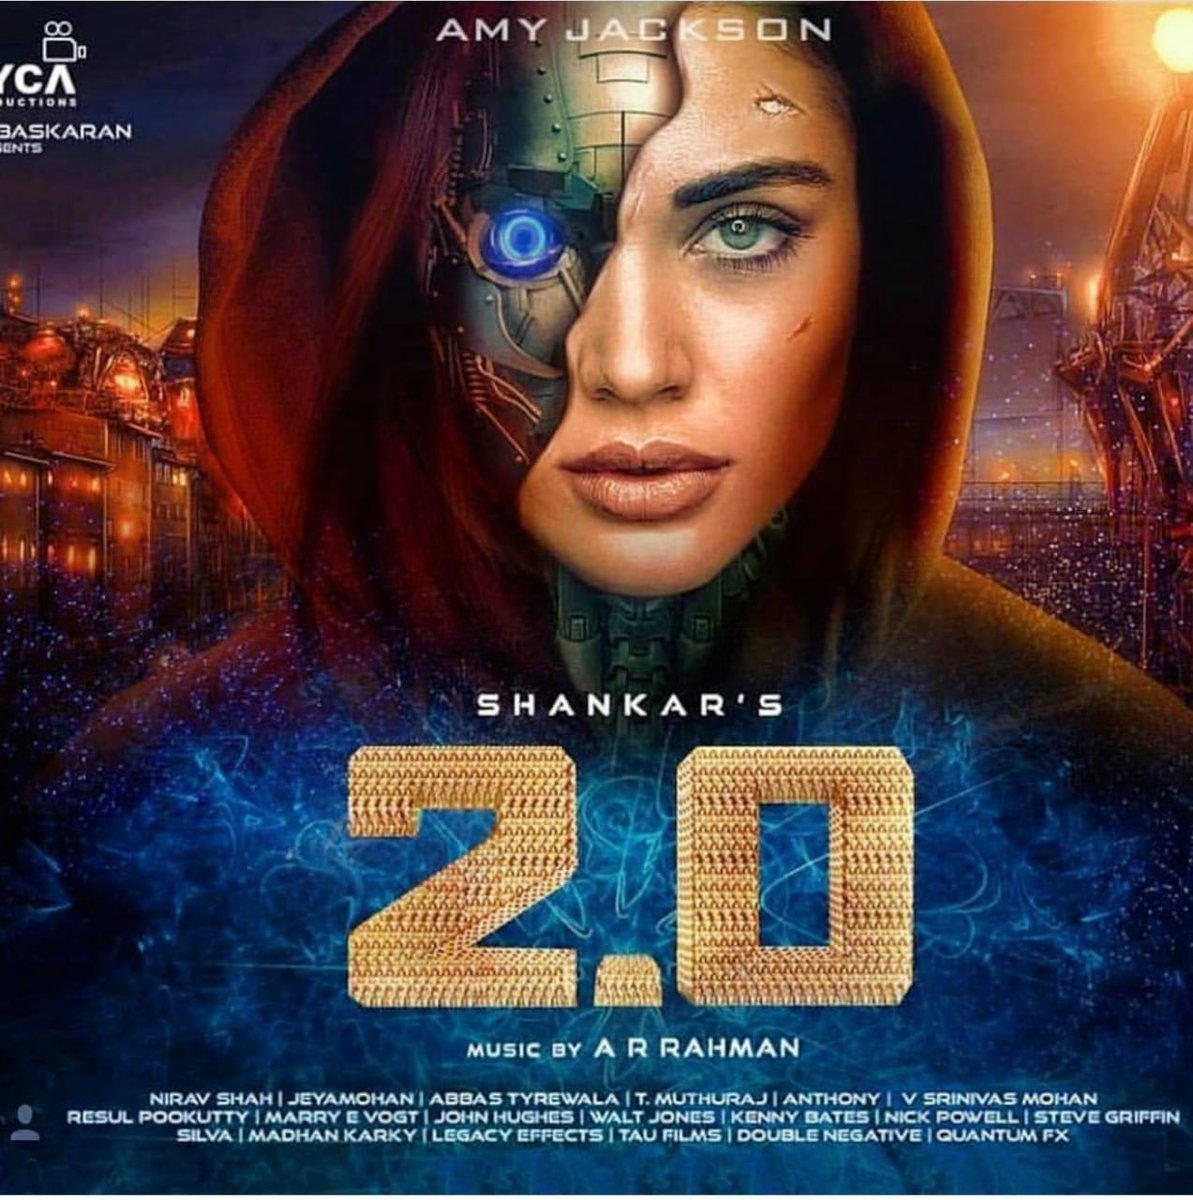 Latest Poster of #2Point0 featuring Amy Jackson